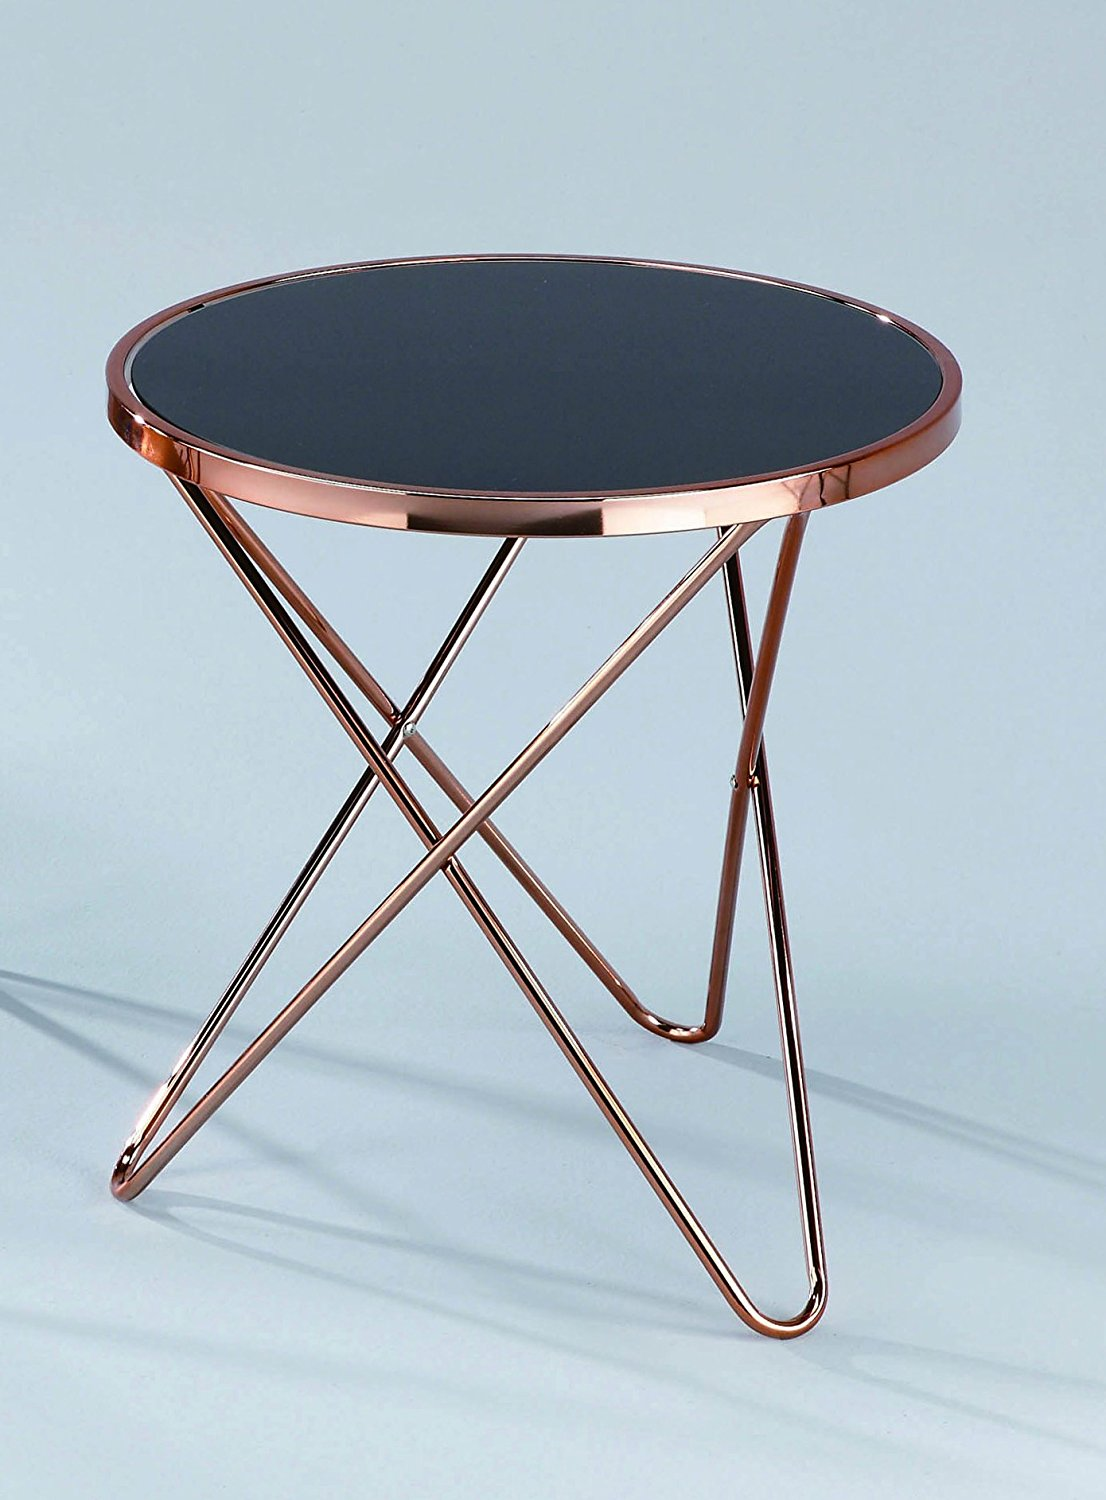 metal frame table base probably super best black glass end coffee circle side vintage solid wood pine accent tables for living room modern spaces and white set full size single